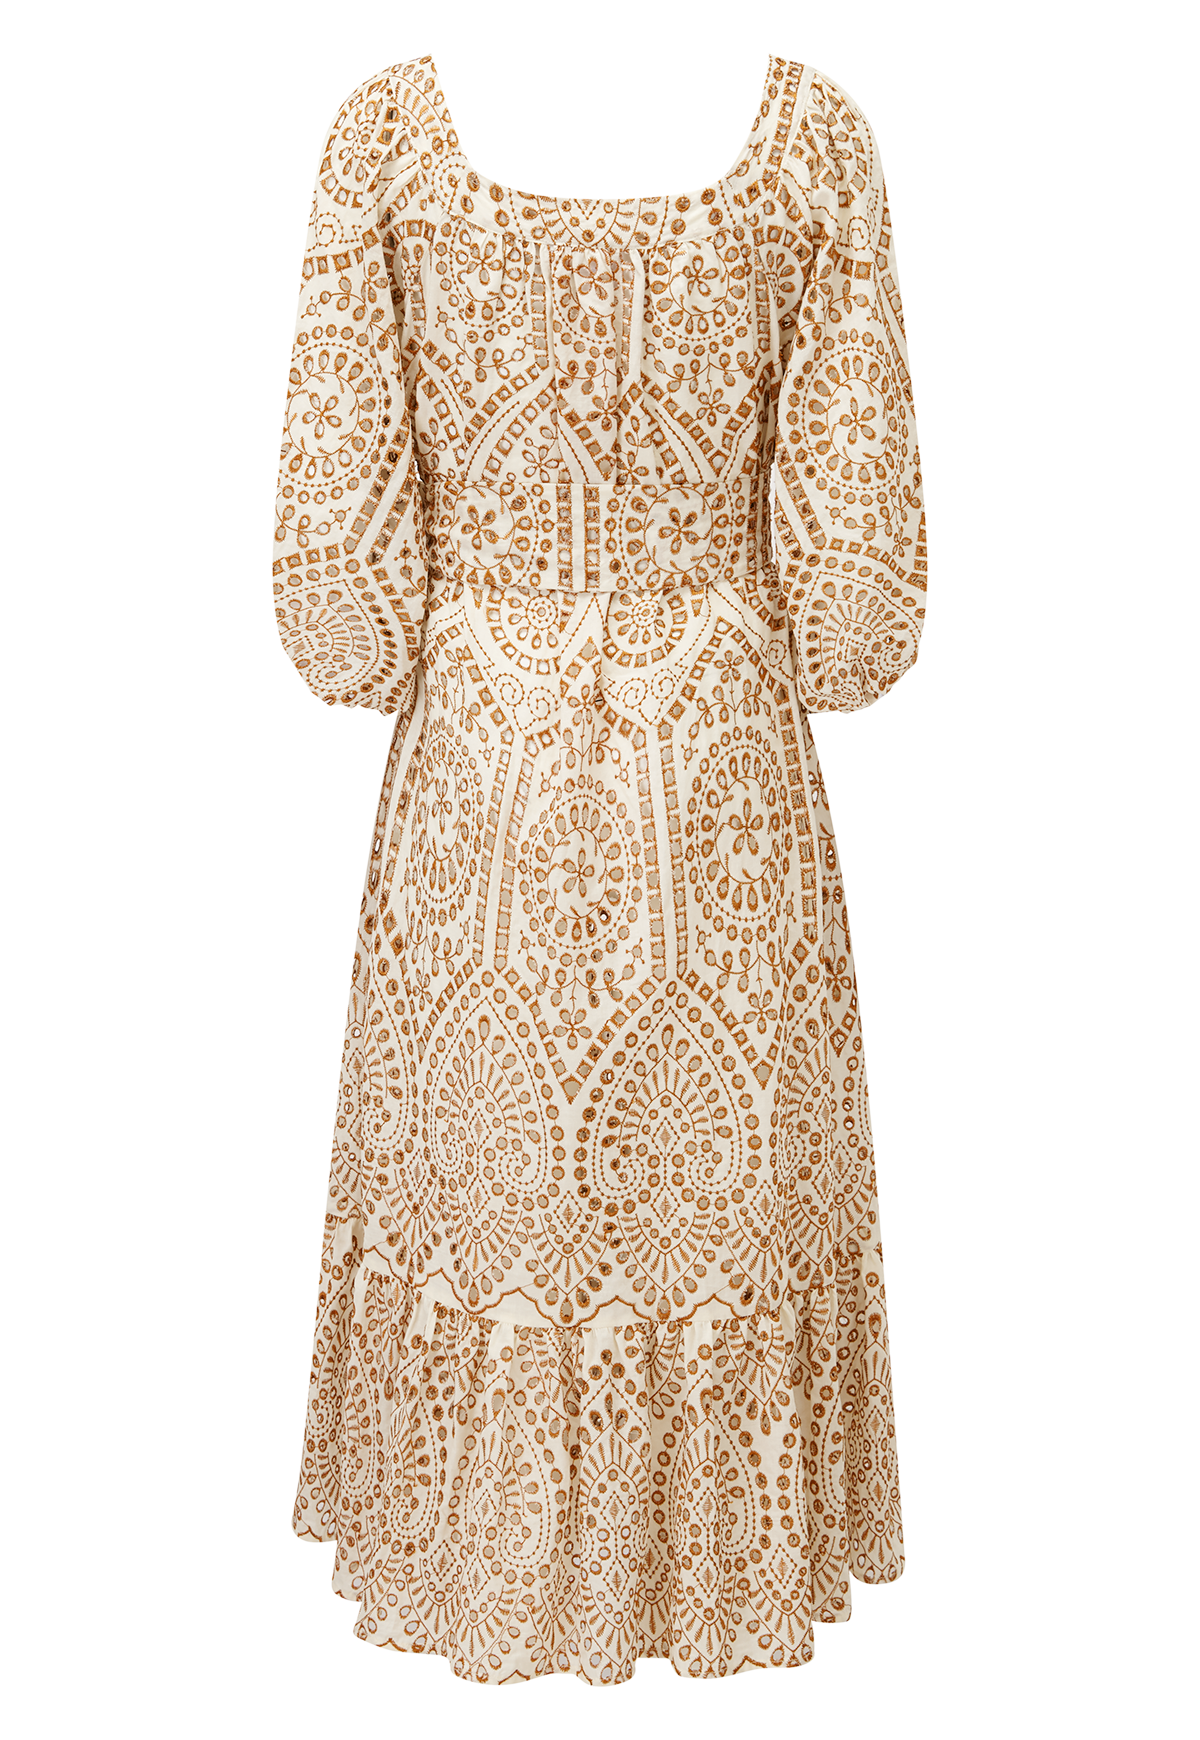 LAURE NATURAL AND TERRACOTTA EYELET DRESS